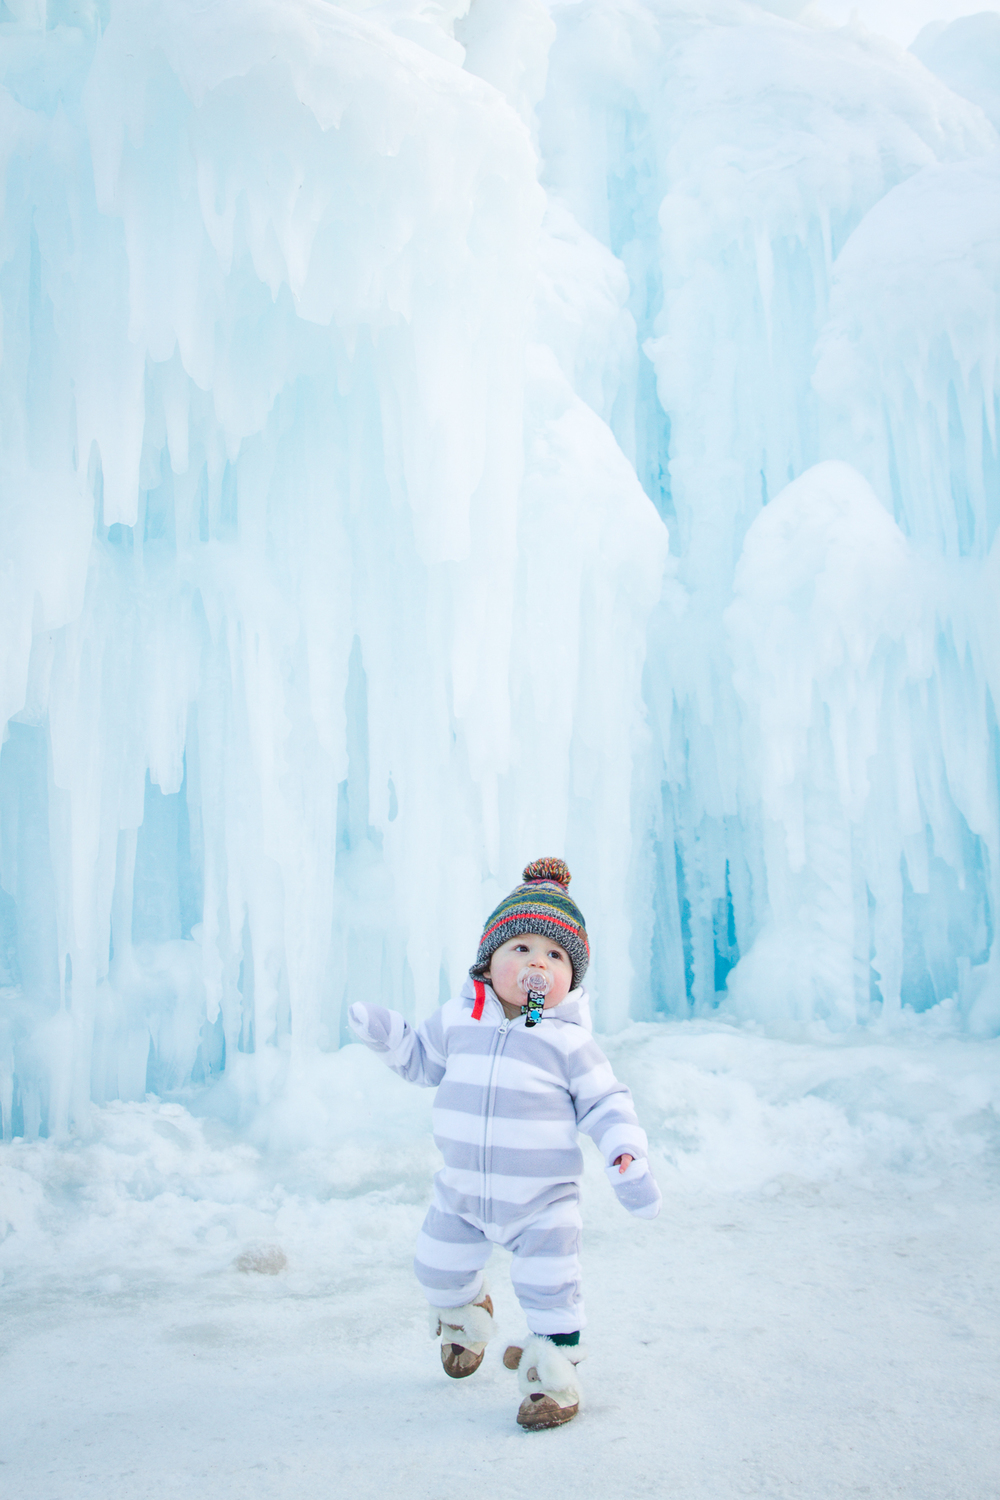 E&T-IceCastle-Feb14-2016-WEB-158.jpg